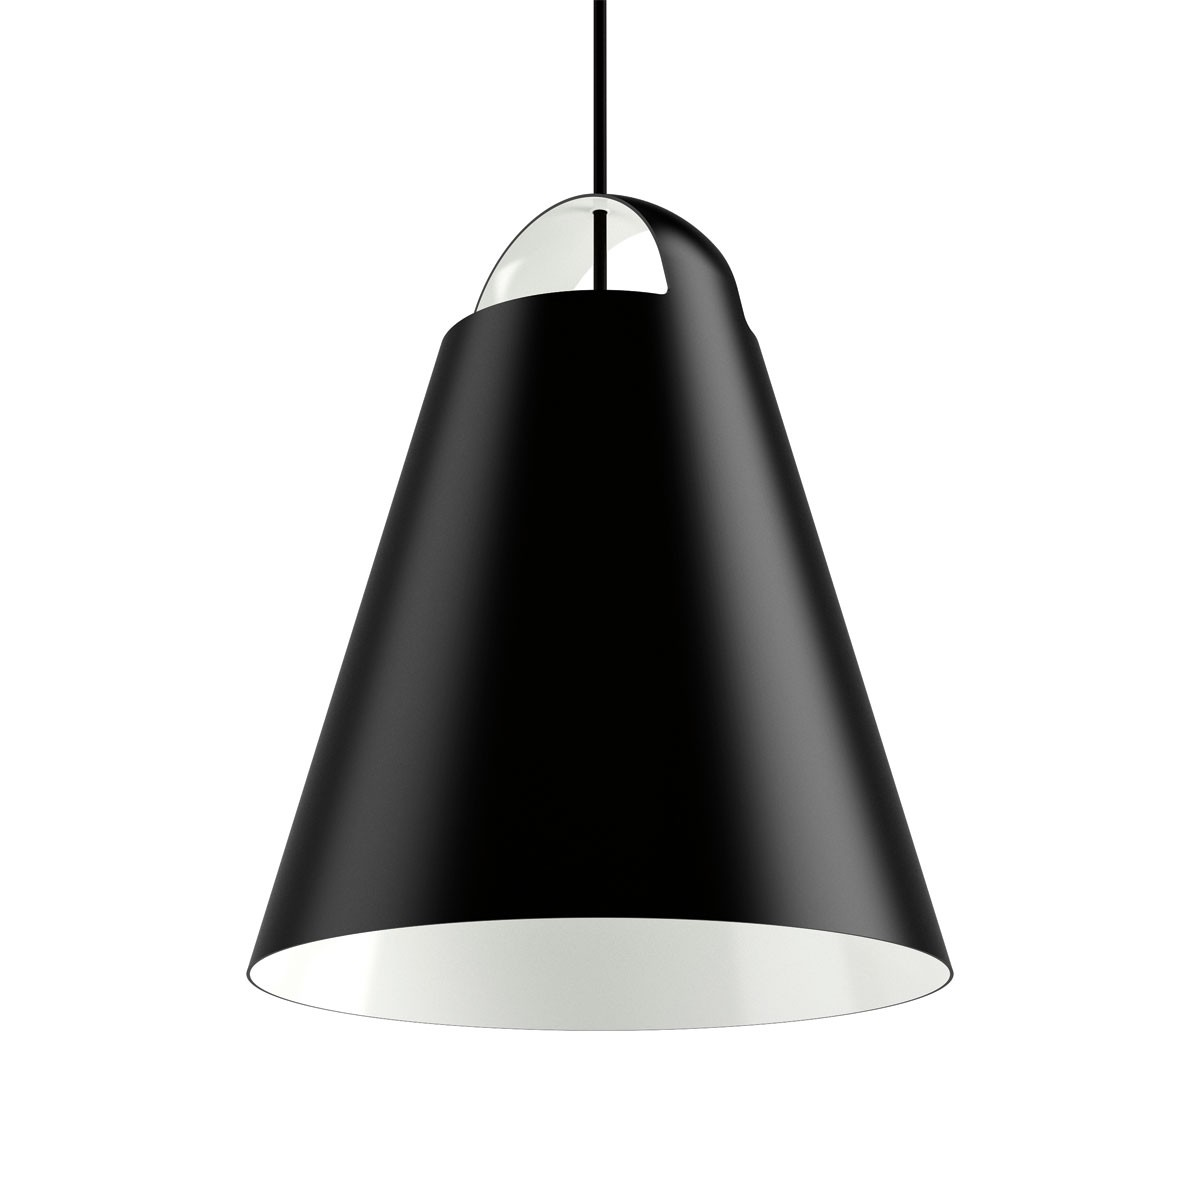 Above pendant, design Mads Odgård for Louis Poulsen, 2017.